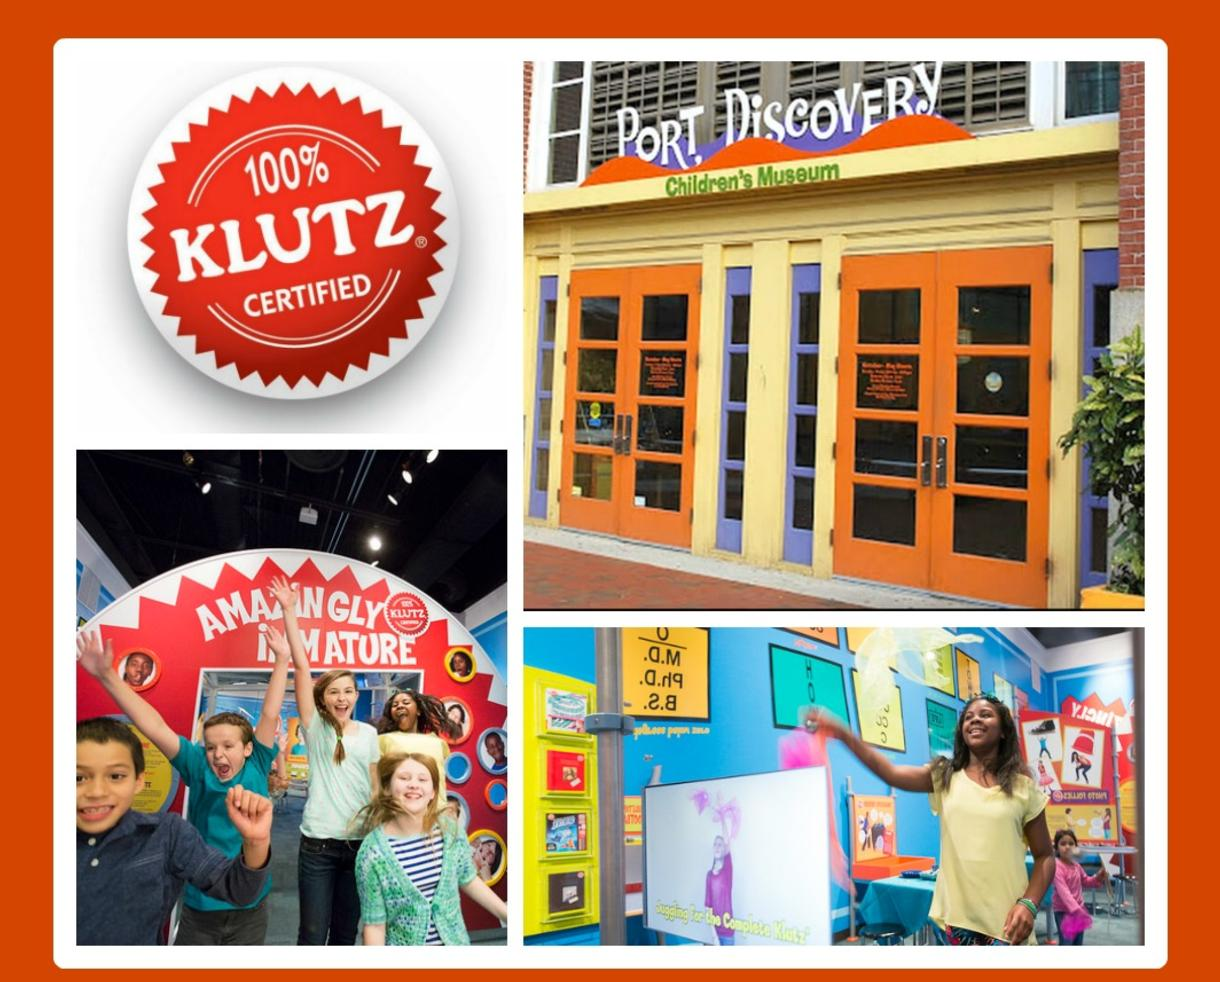 $10 for Port Discovery Children's Museum Admission - Baltimore (34% Off!)